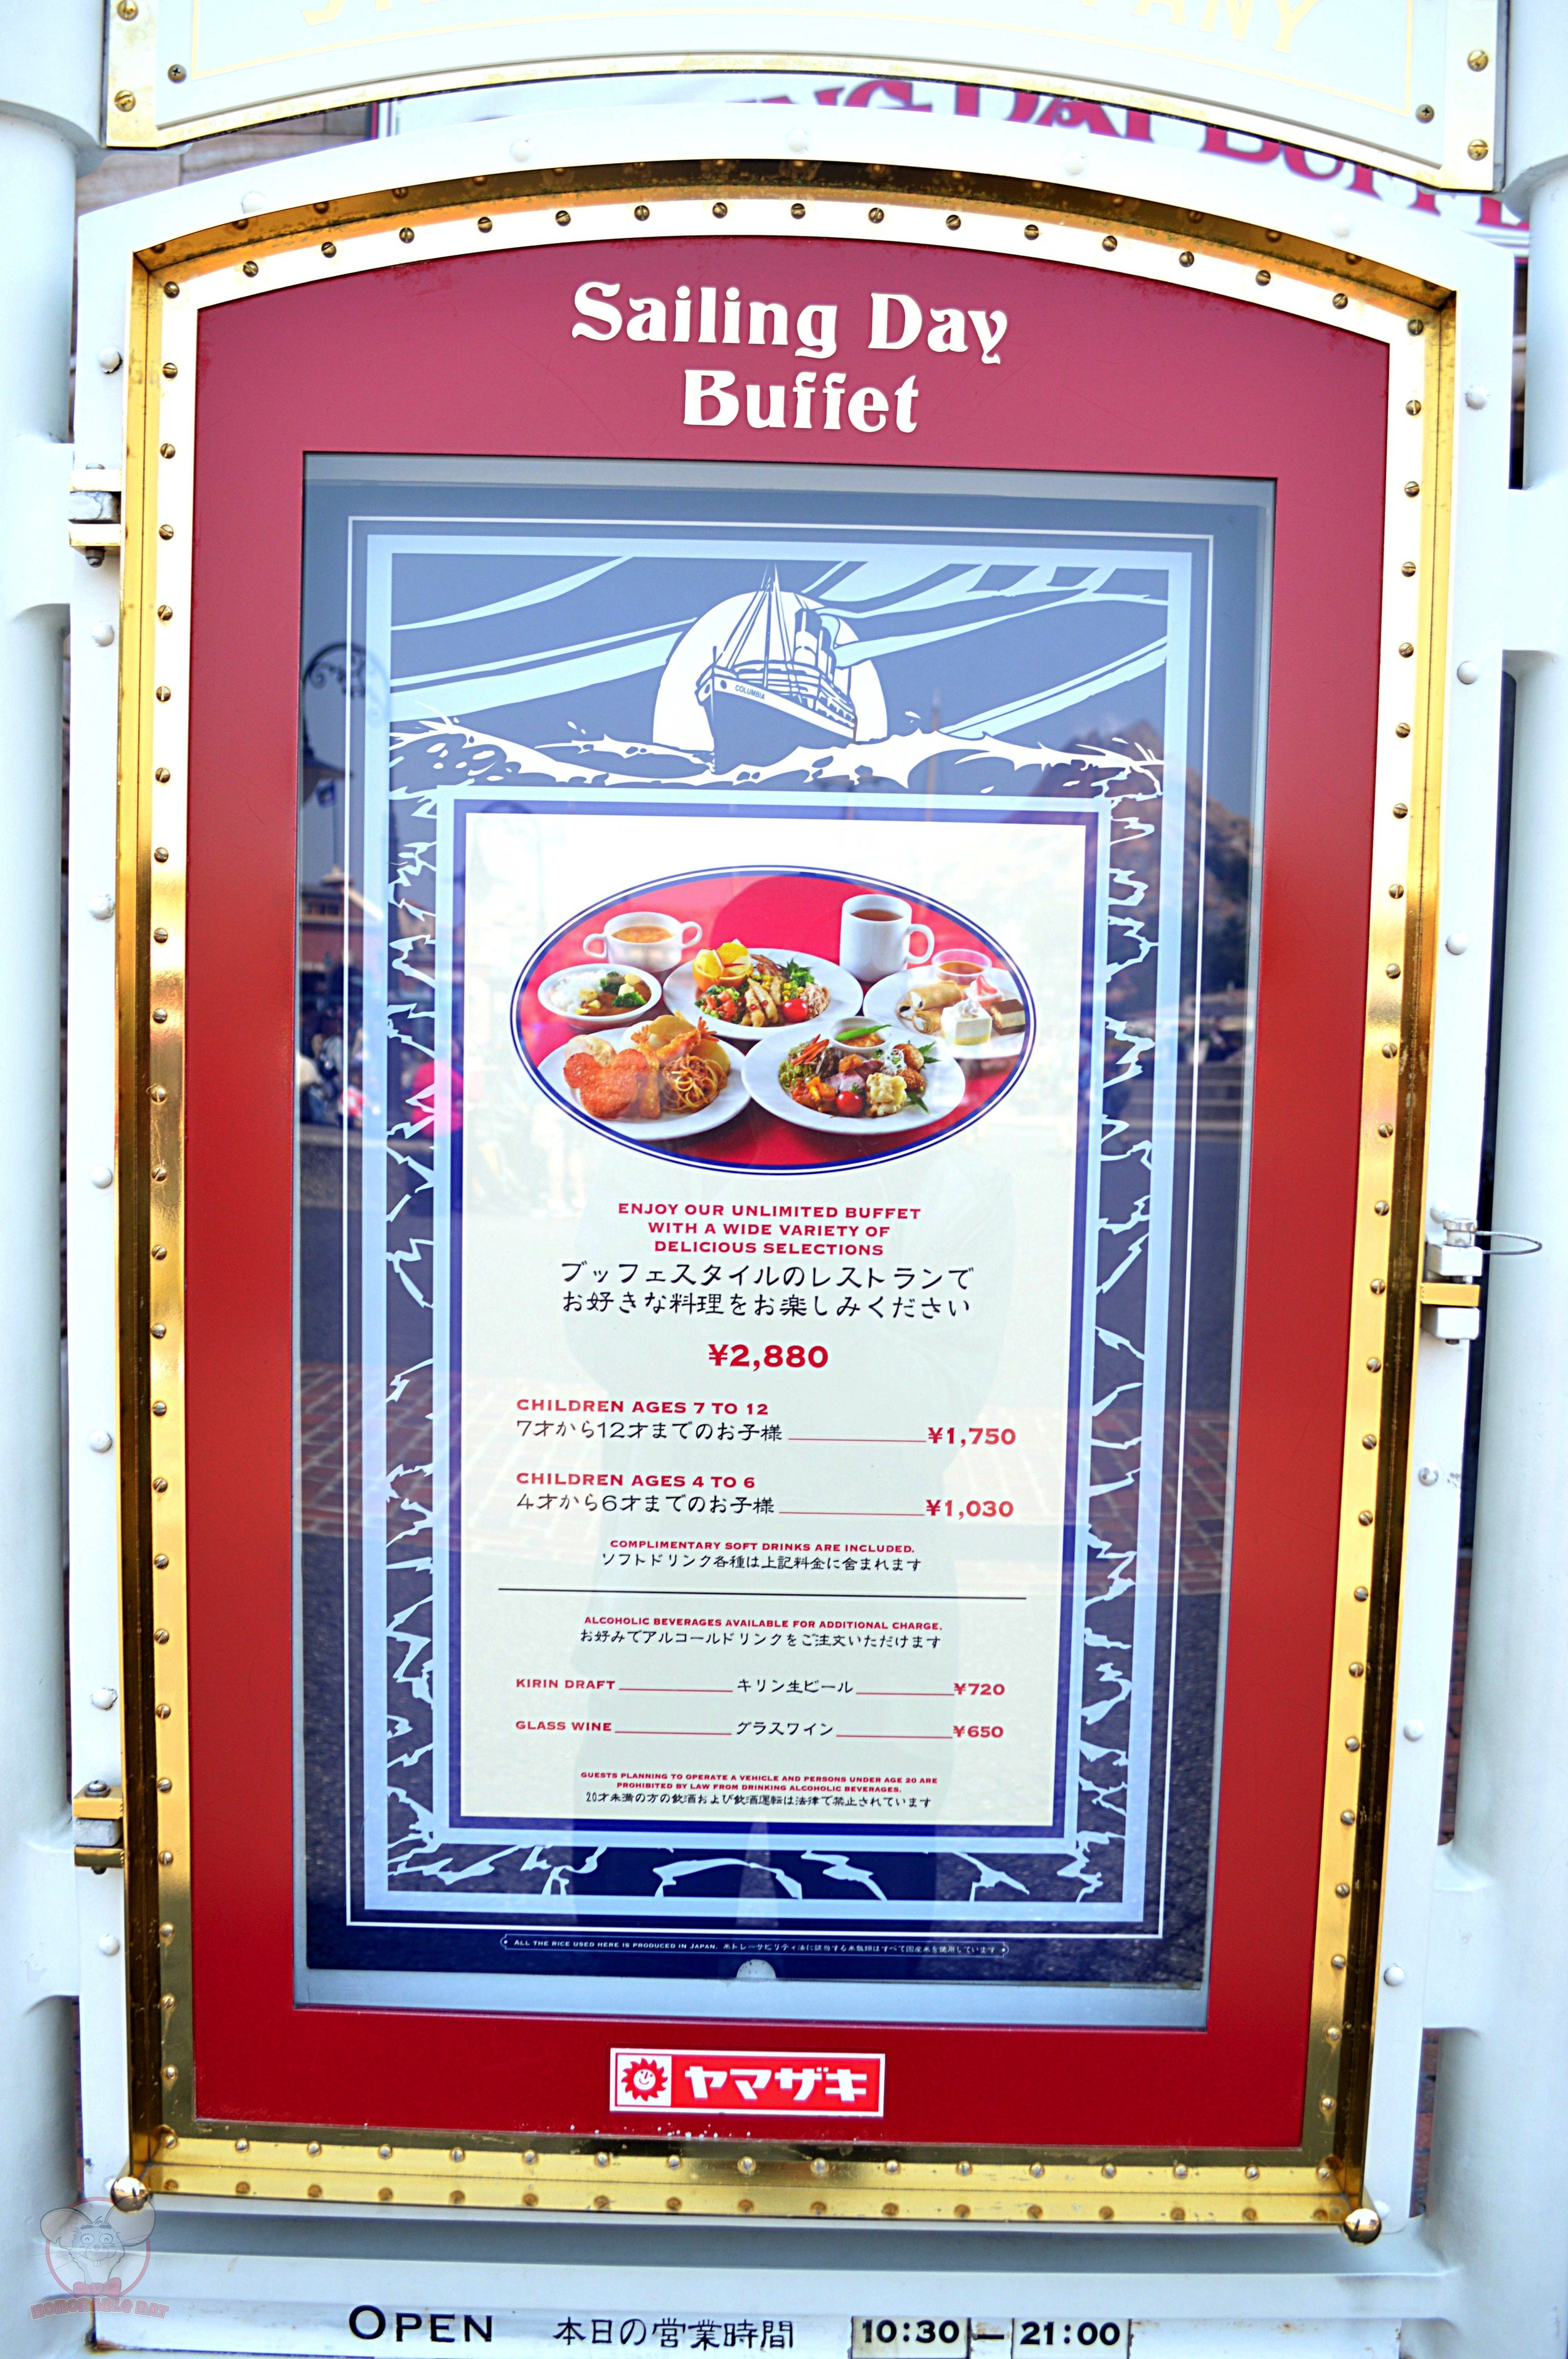 Sailing Day Buffet Pricelist